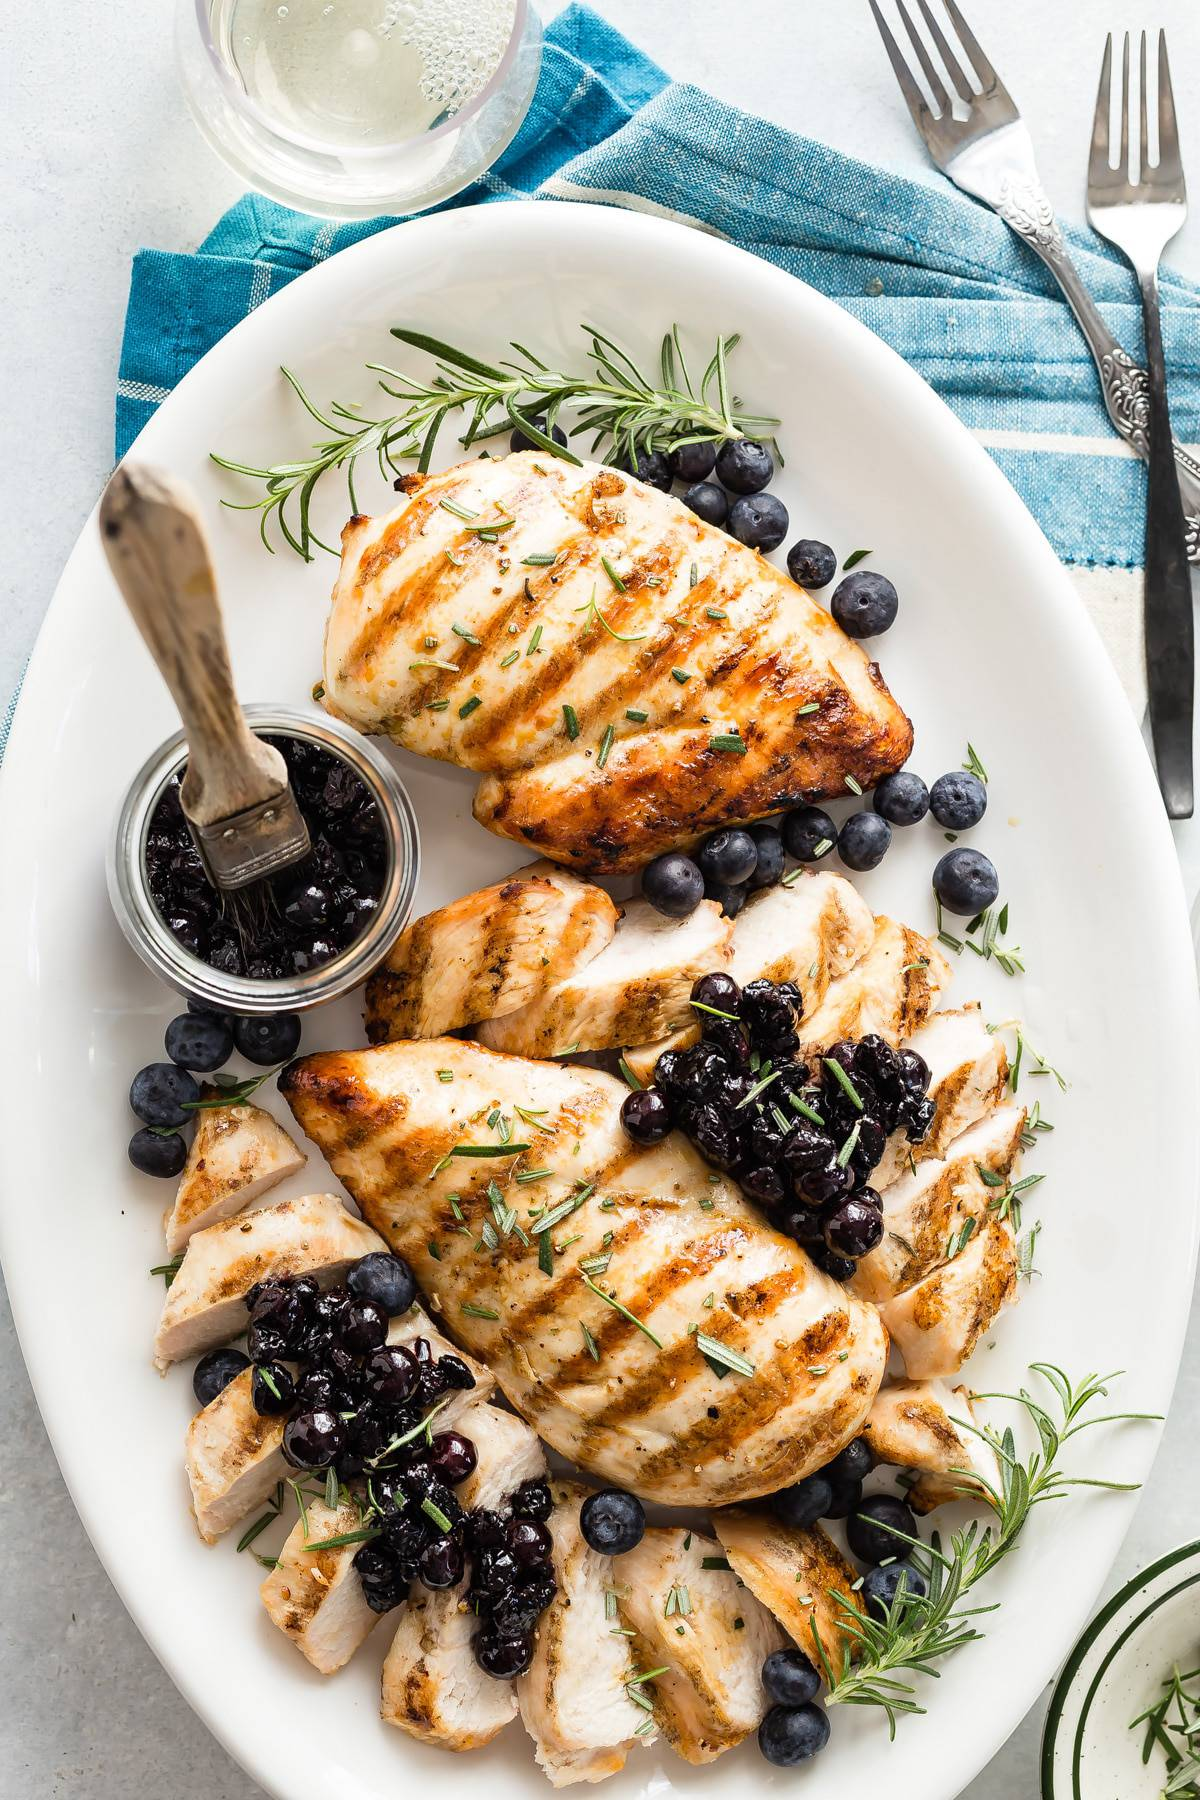 Grilled Chicken Breast with Savory Blueberry Relish